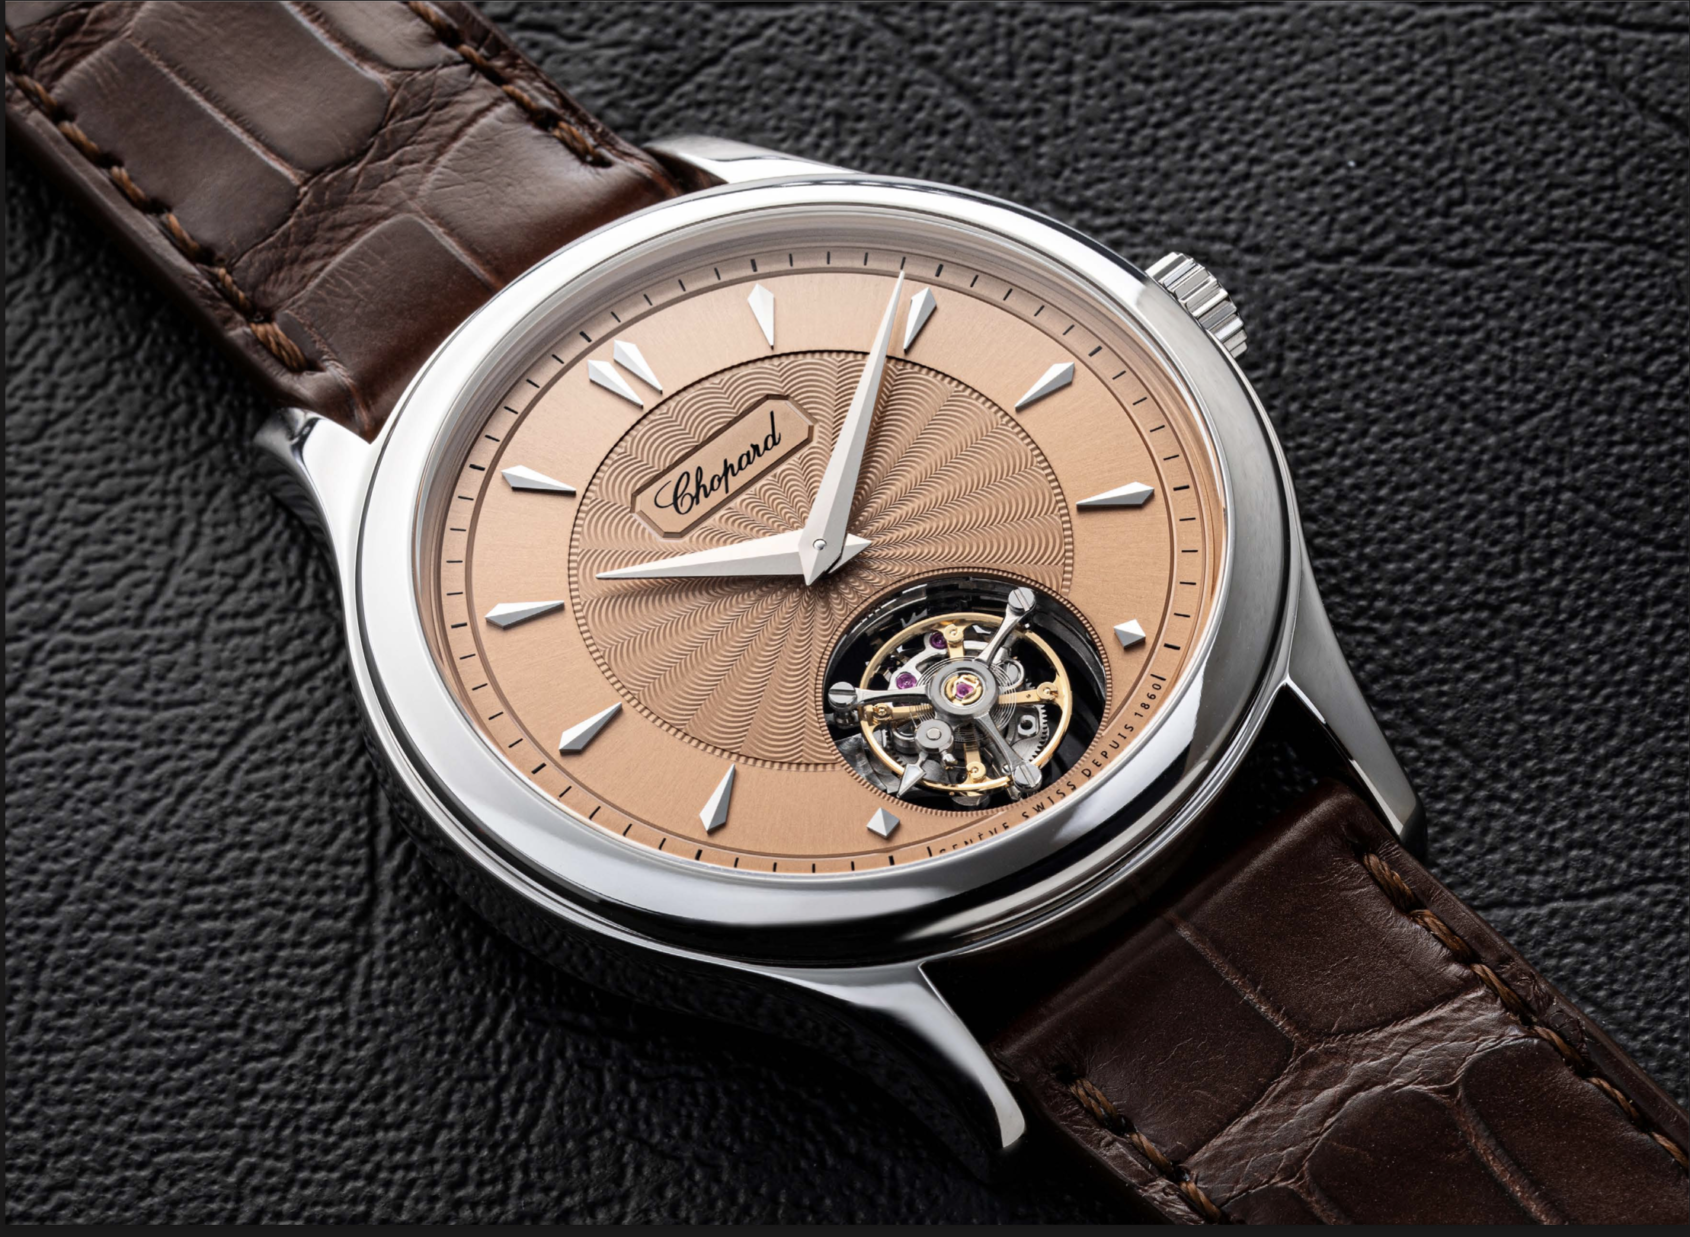 INTRODUCING: The Chopard L.U.C 1860 Flying T, Special Revolution